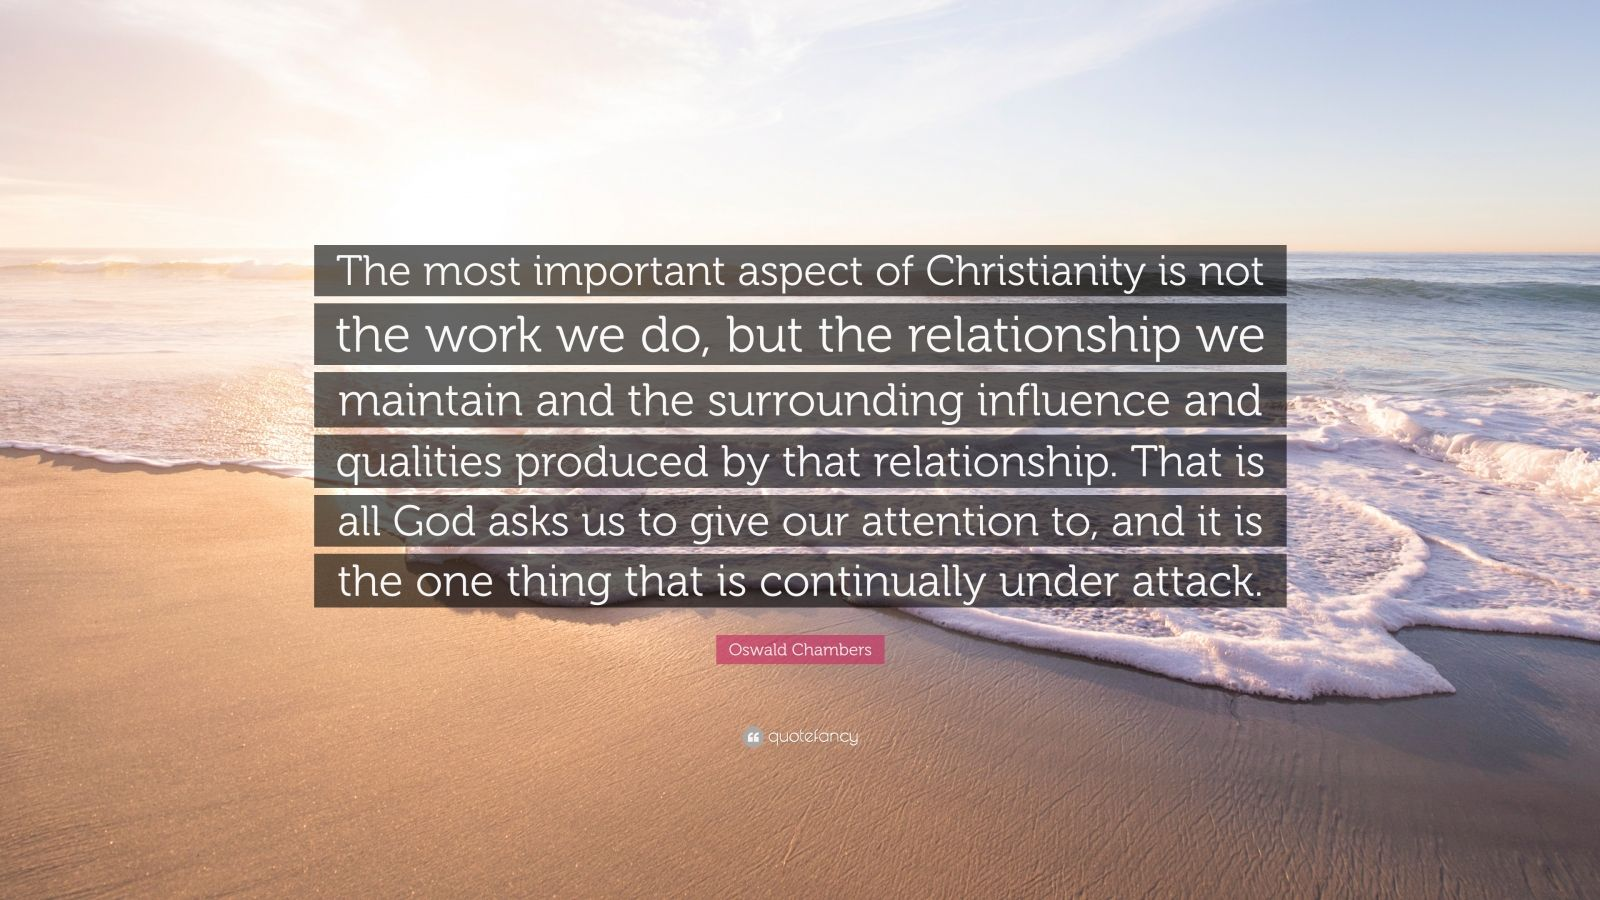 """Oswald Chambers Quote: """"The most important aspect of Christianity is not the work we do, but the relationship we maintain and the surrounding influence and qualities produced by that relationship. That is all God asks us to give our attention to, and it is the one thing that is continually under attack."""""""